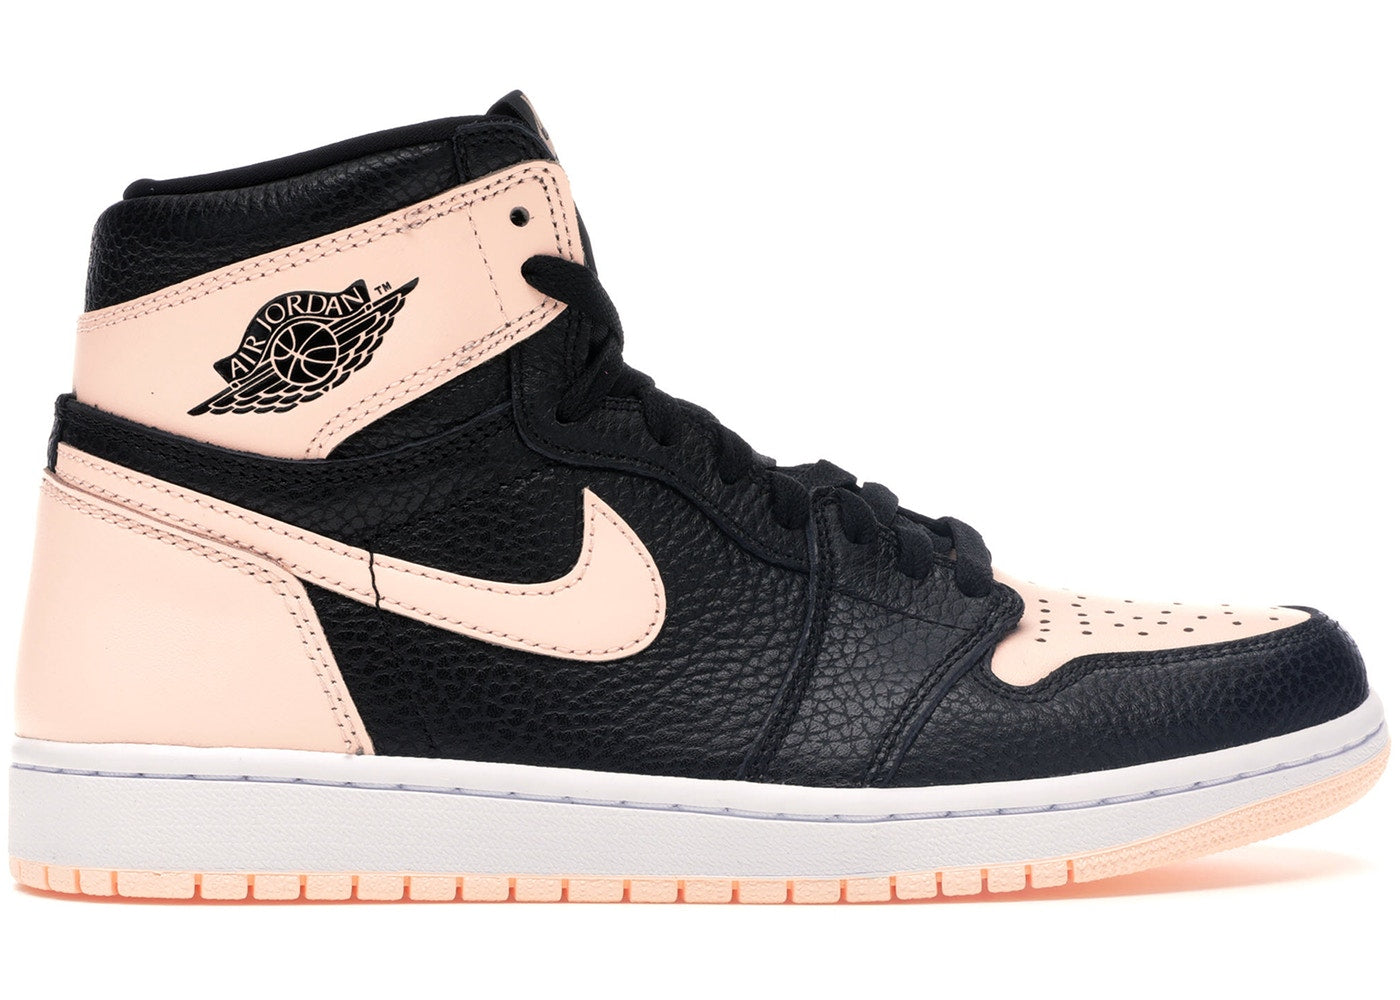 Jordan 1 Retro High Black Crimson Tint - CookiesandKicksLA